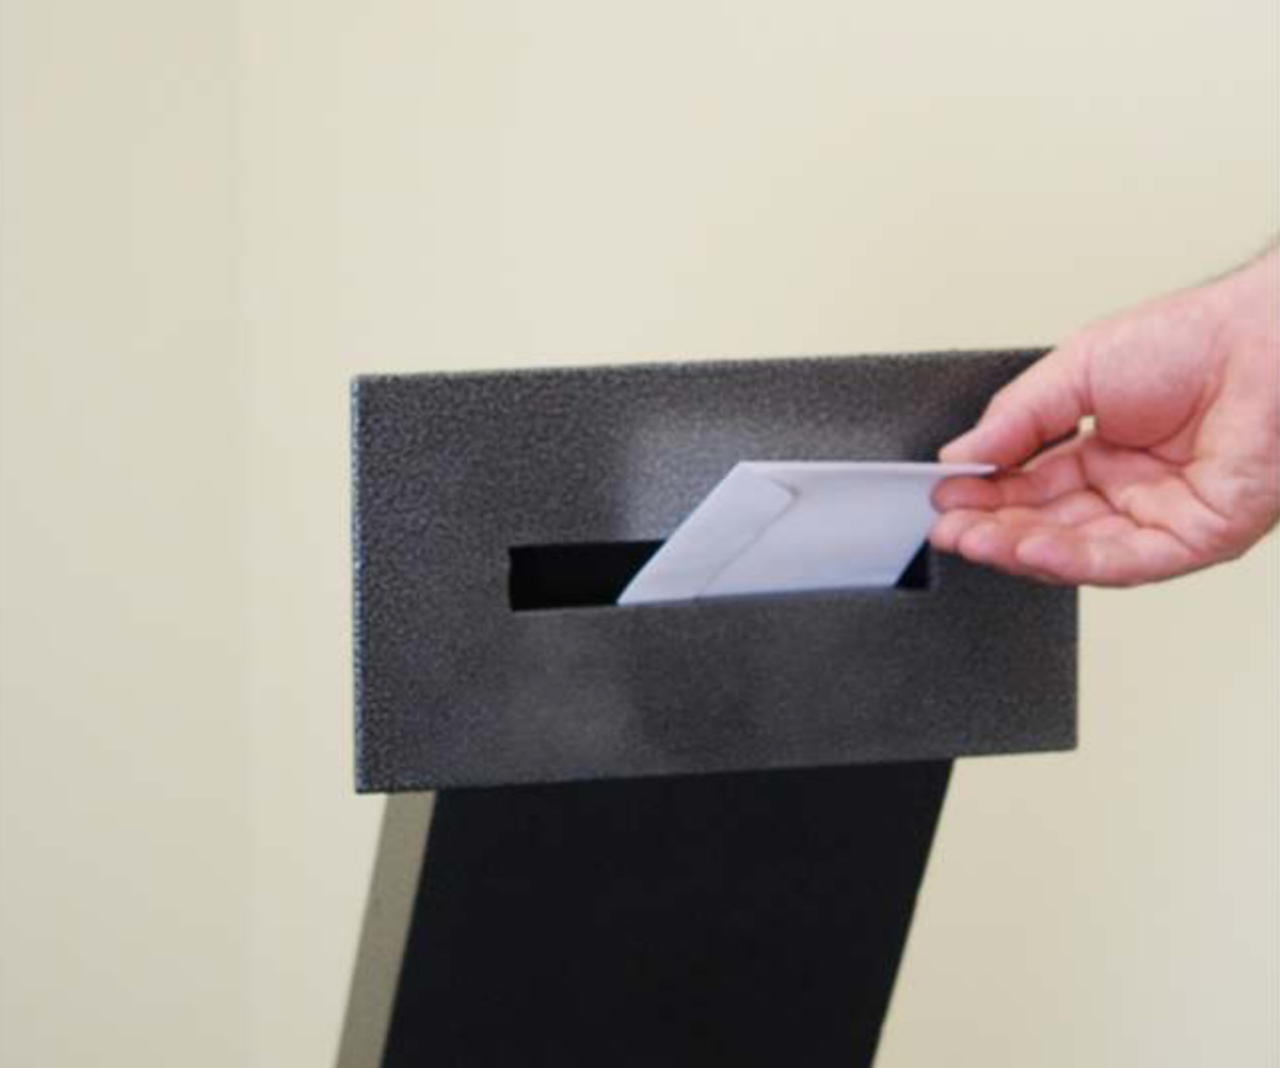 Envelope Drop Through Wall with Electronic Keypad Access envelope being dropped